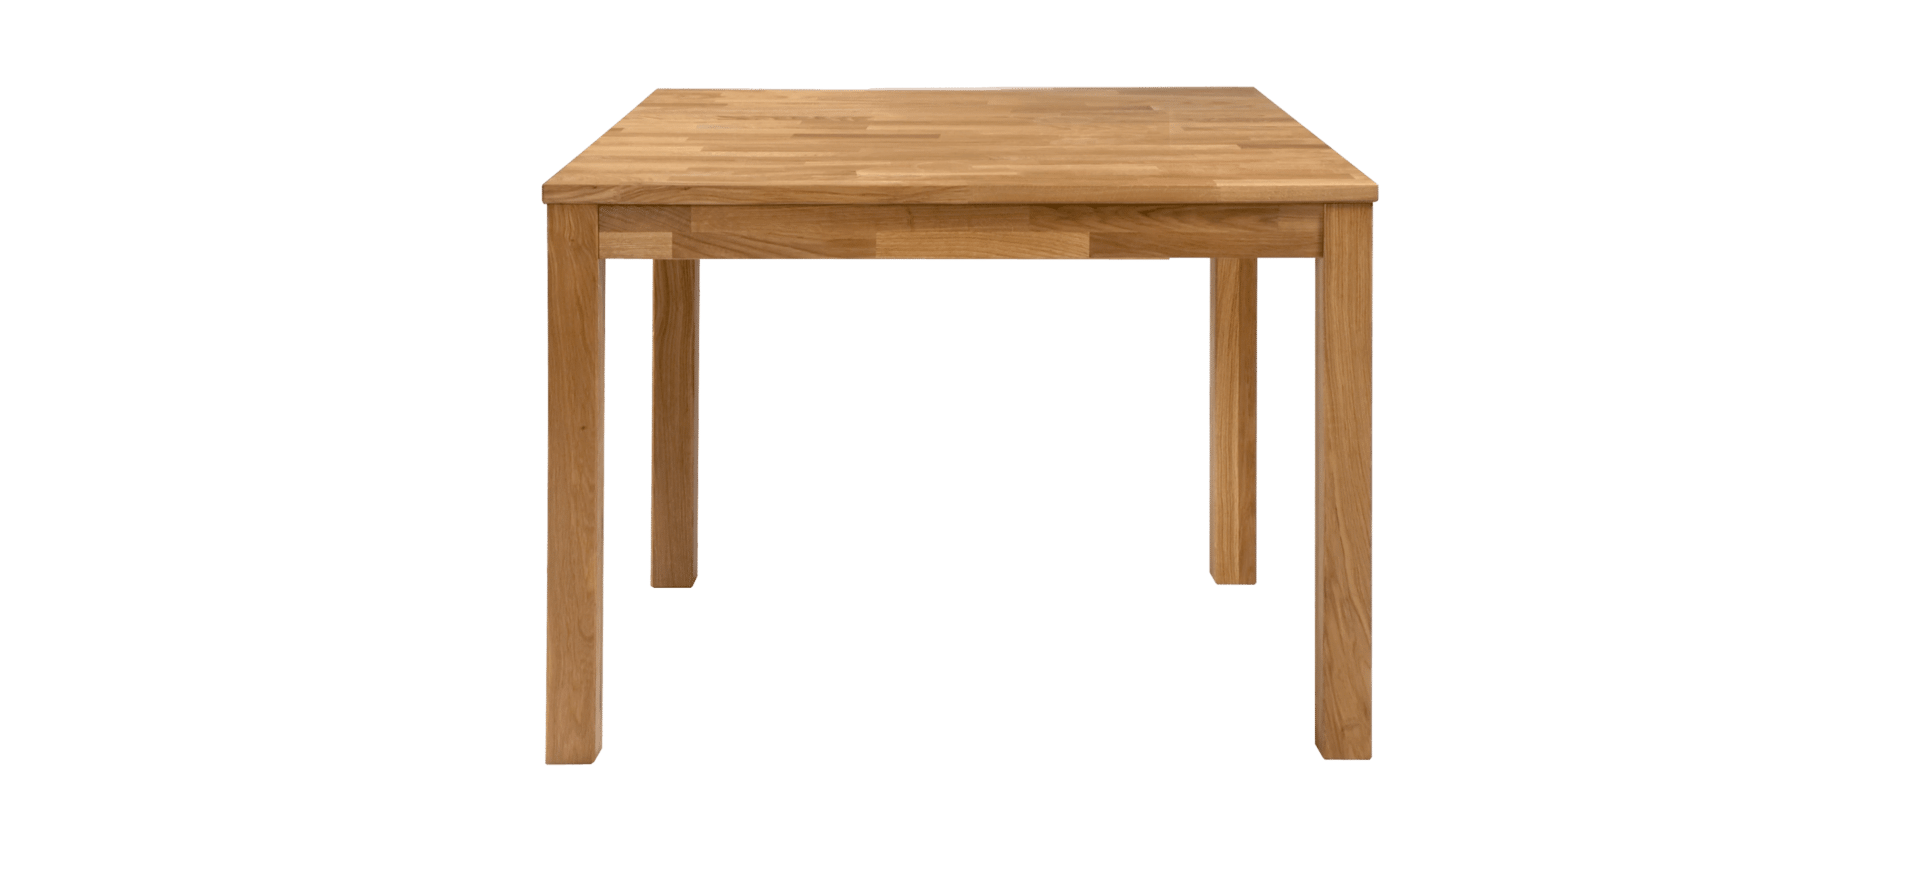 The Skagen dining table 90cm, oak by Bolia boasts a top finish in oiled oak, with a frame finish in oiled oak. Designed by Bolia Design Team, this beautiful dining table seats 2-4, and is the perfect compliment to a traditional dining room.